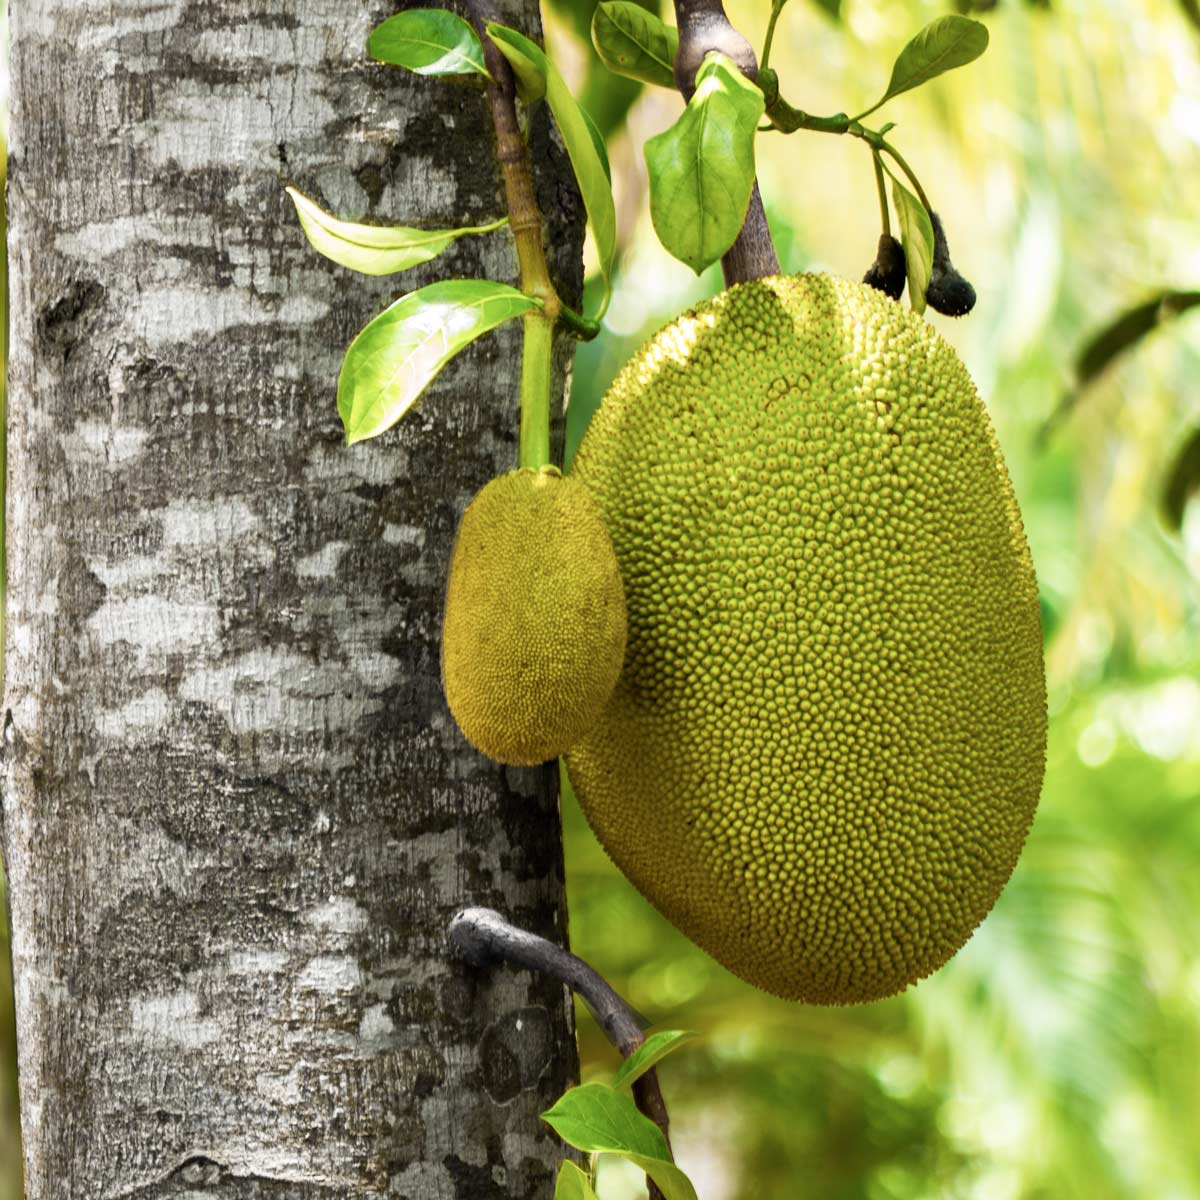 Jackfrucht bestellen, Jackfrucht kaufen, Jackfrucht, Jackfruit, Bio-Jackfruit, Bio-Jackfrucht, Who's Jack, Fleischersatz, Alternative zu Fleisch, Who's Jack, Jackfruit_Dinner